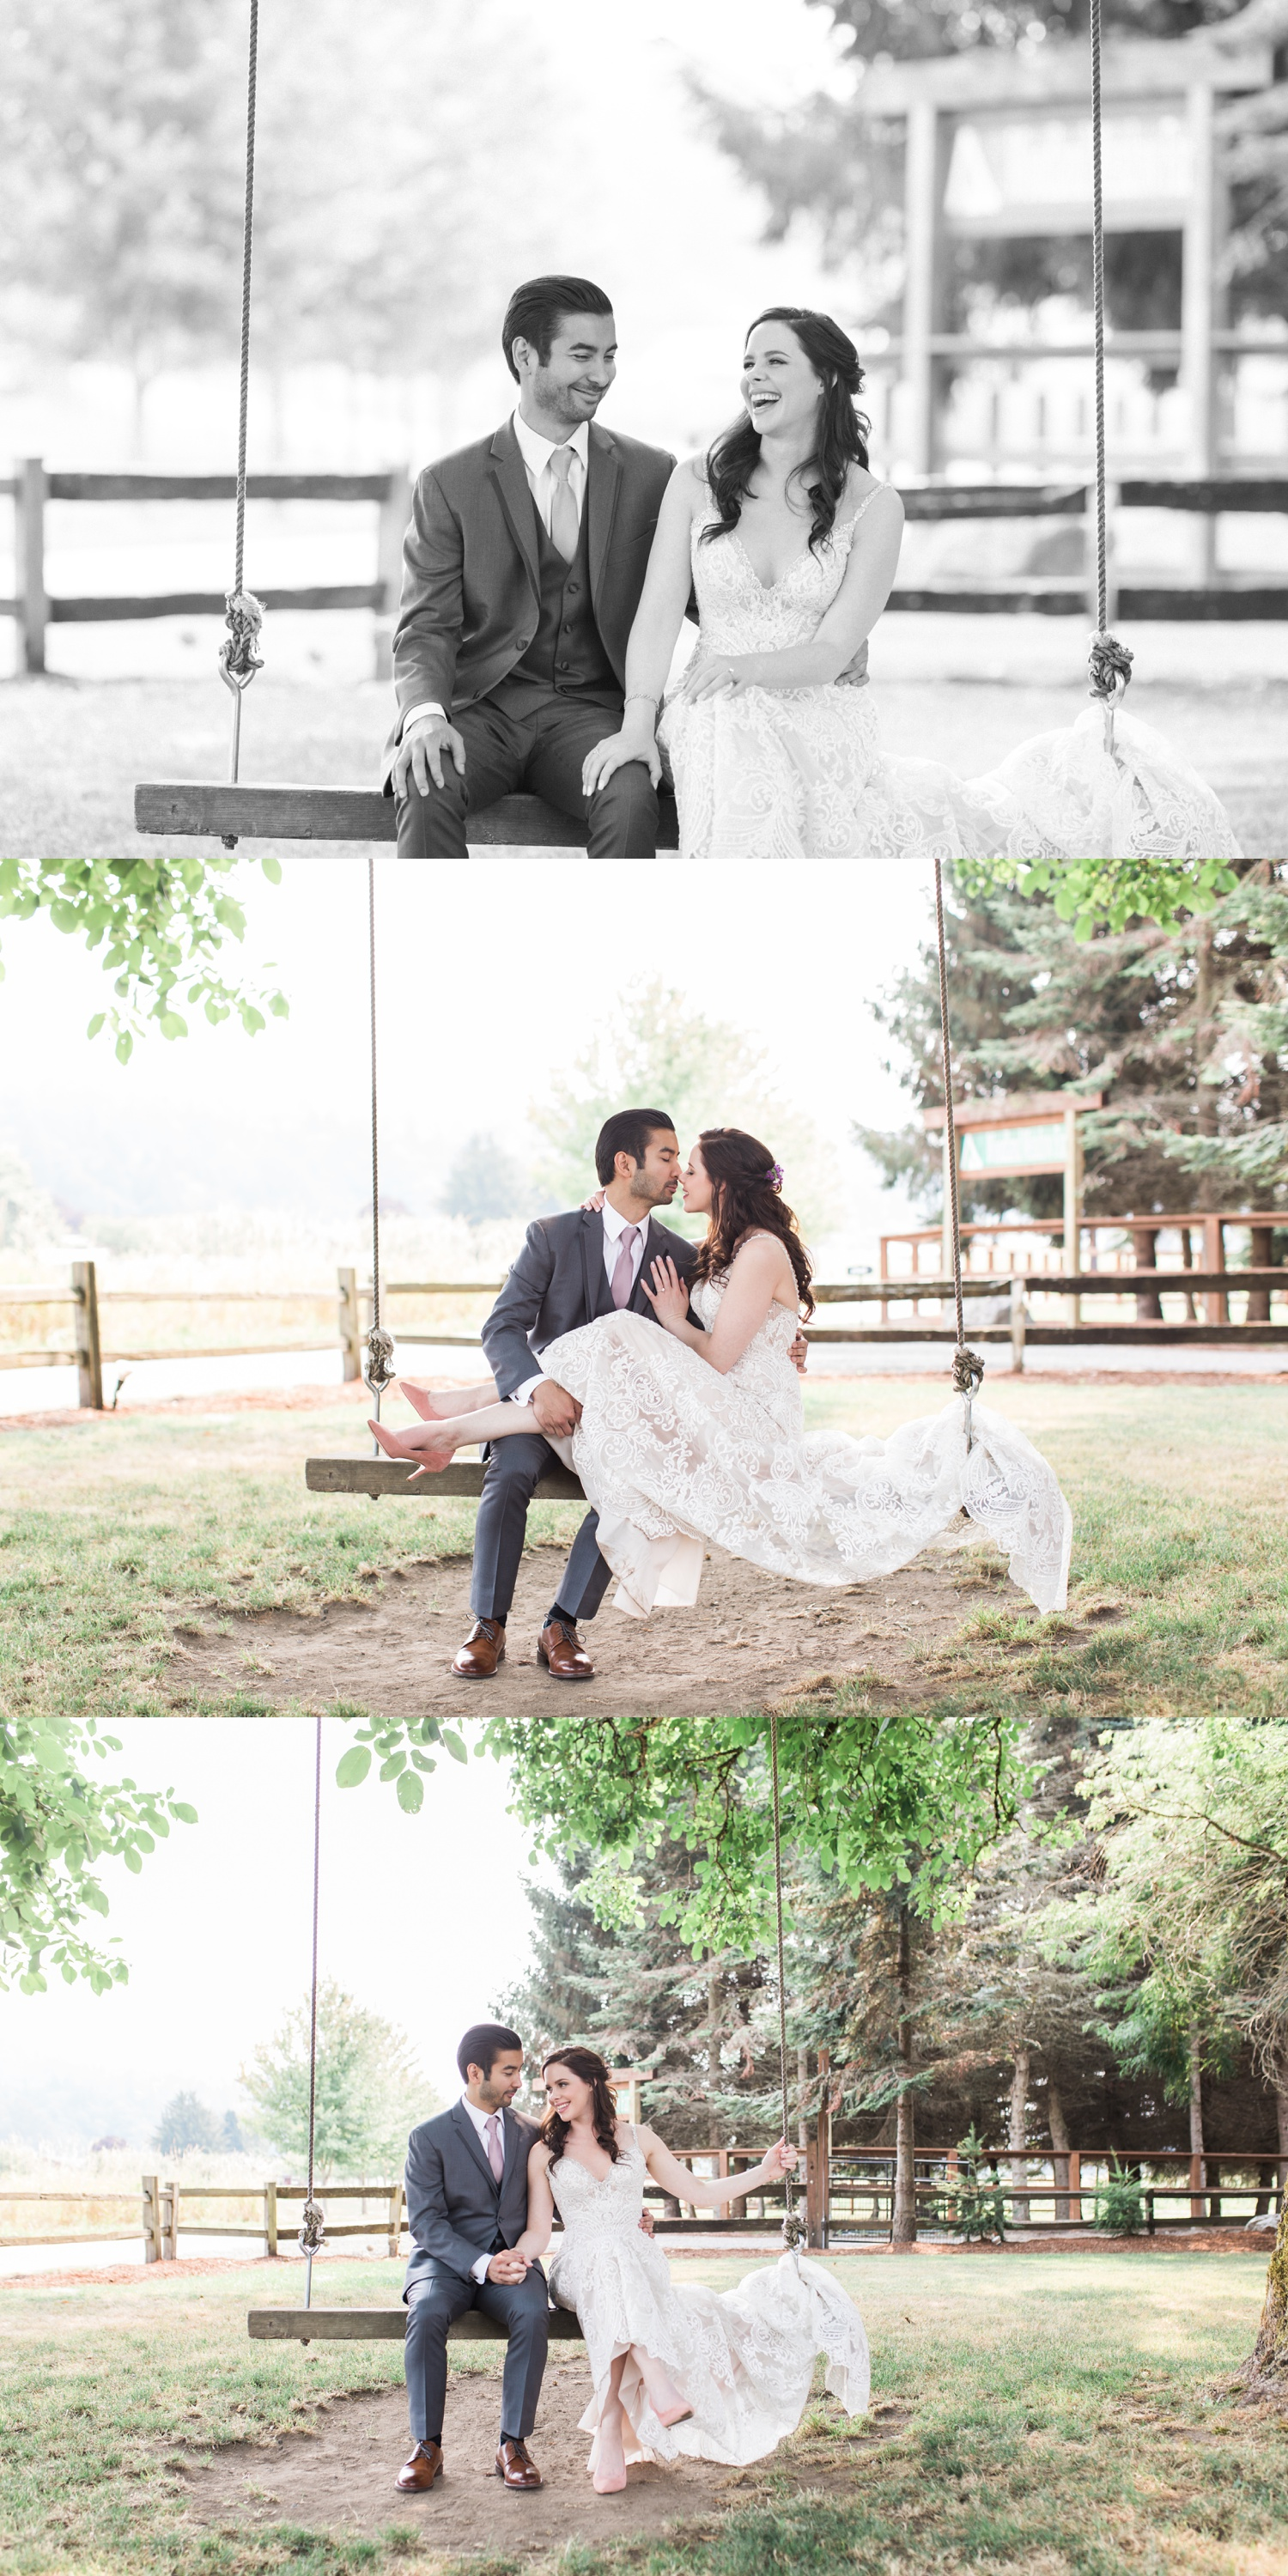 Bride & Groom on swing at Woodland Meadow Farms in Snohomish wedding near Seattle WA